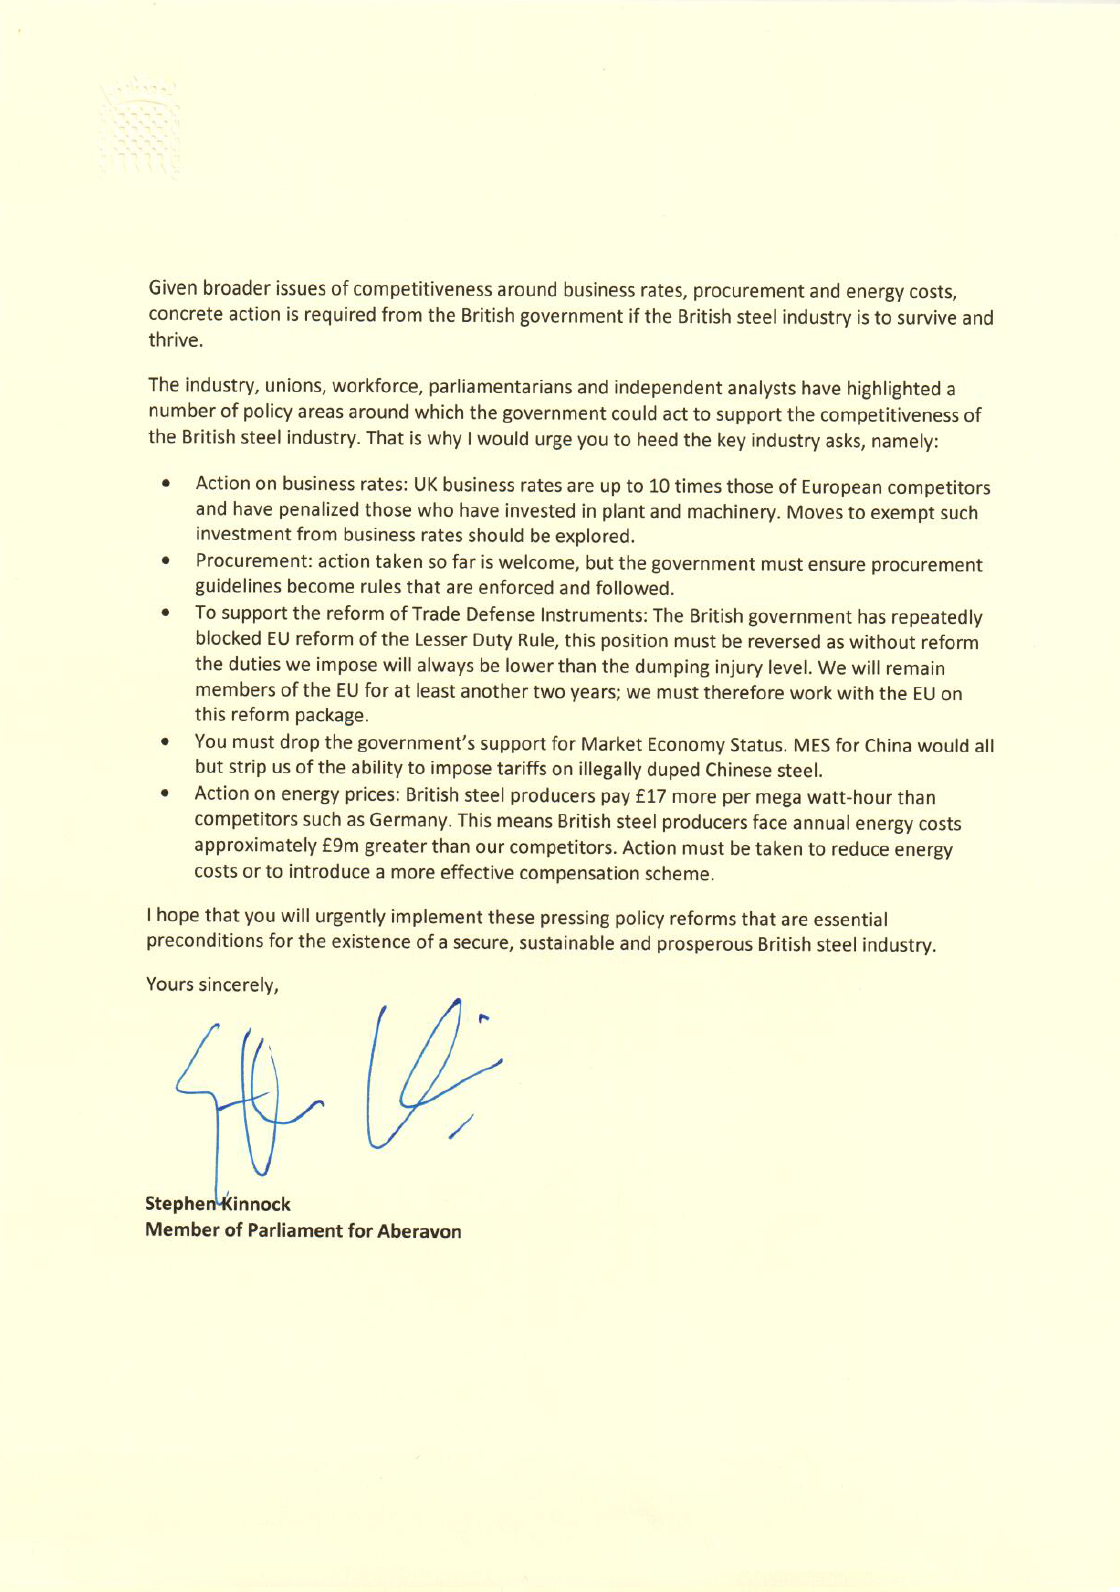 Letter_to_Theresa_May_002.png